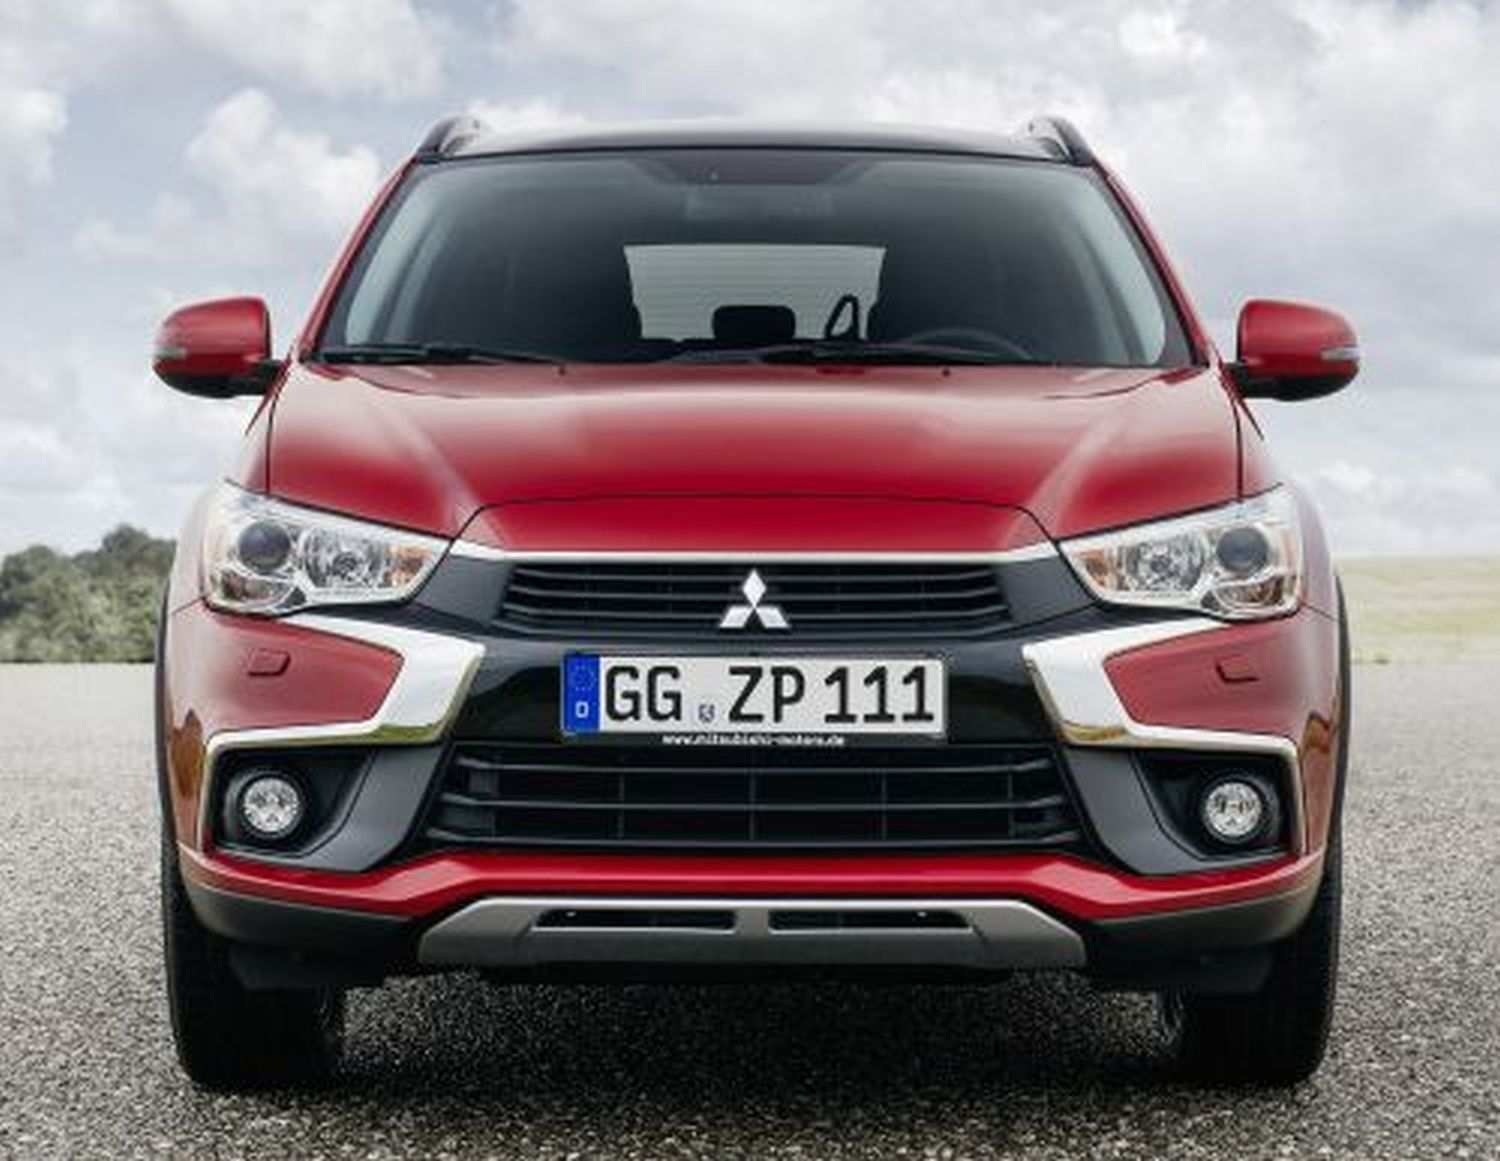 19 All New Mitsubishi Asx New Concept